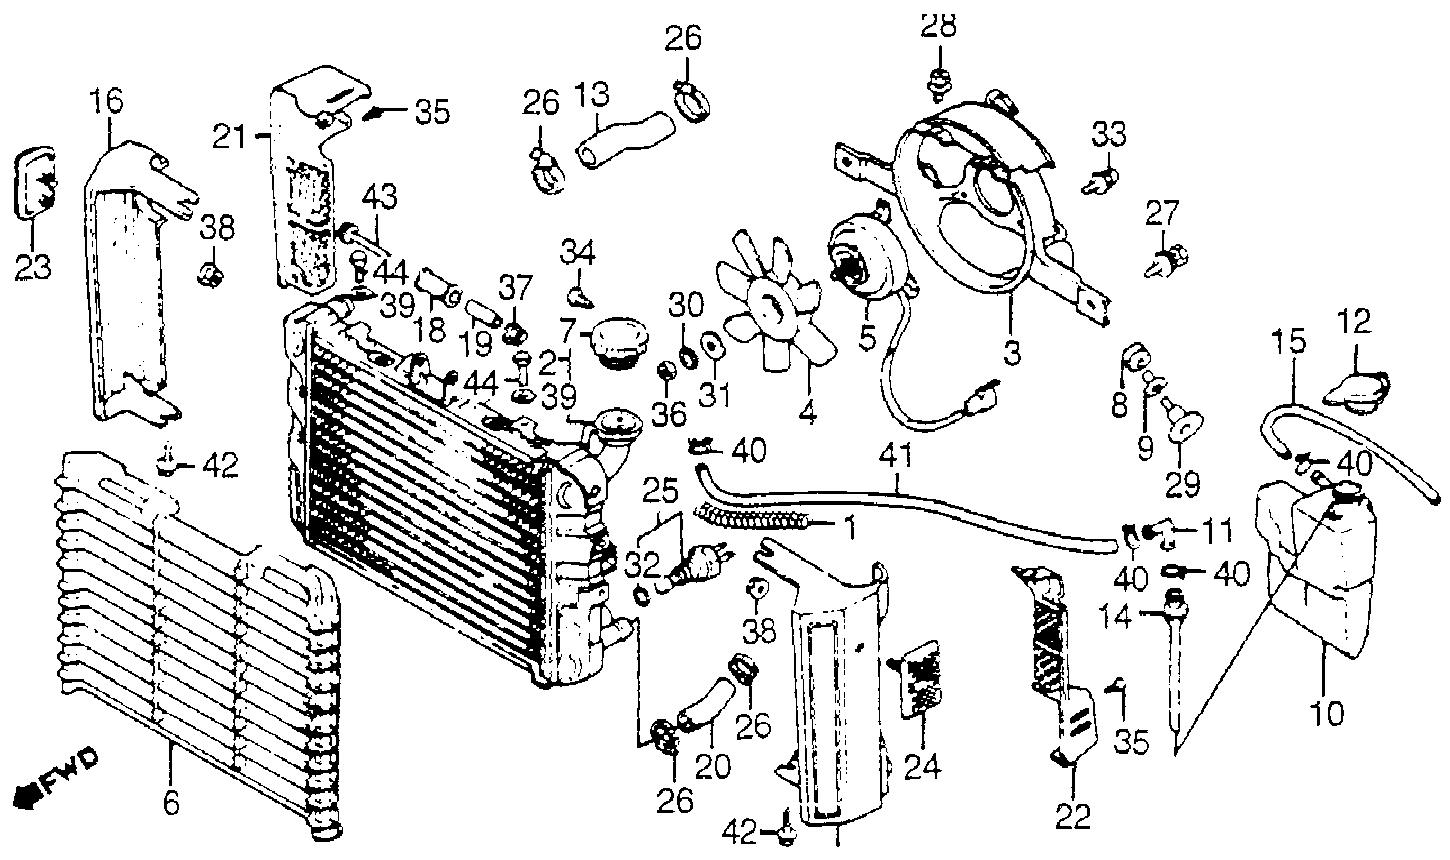 2000 jeep wrangler heater blower wiring diagram wiring 2005 ford f-150 radio wiring diagram 2005 ford f-150 radio wiring diagram 2005 ford f-150 radio wiring diagram 2005 ford f-150 radio wiring diagram